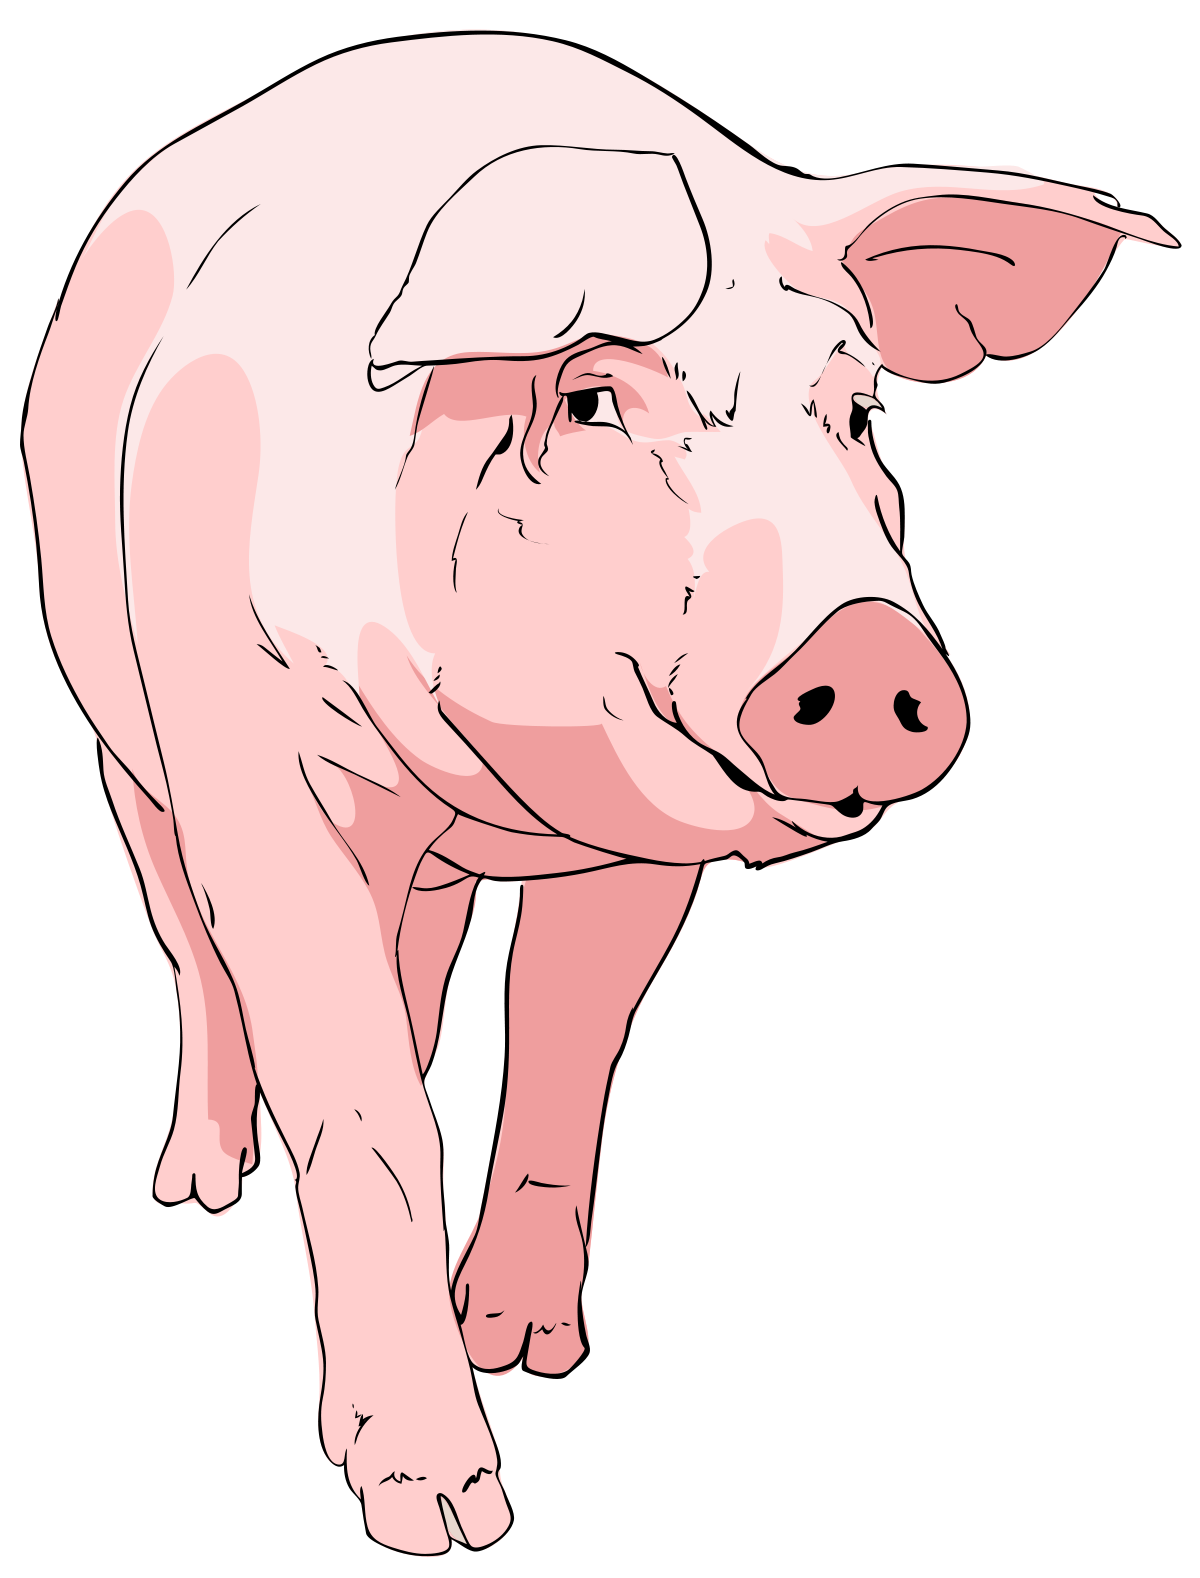 11 pigs clipart svg library library File:Pig clipart 01.svg - Wikimedia Commons svg library library